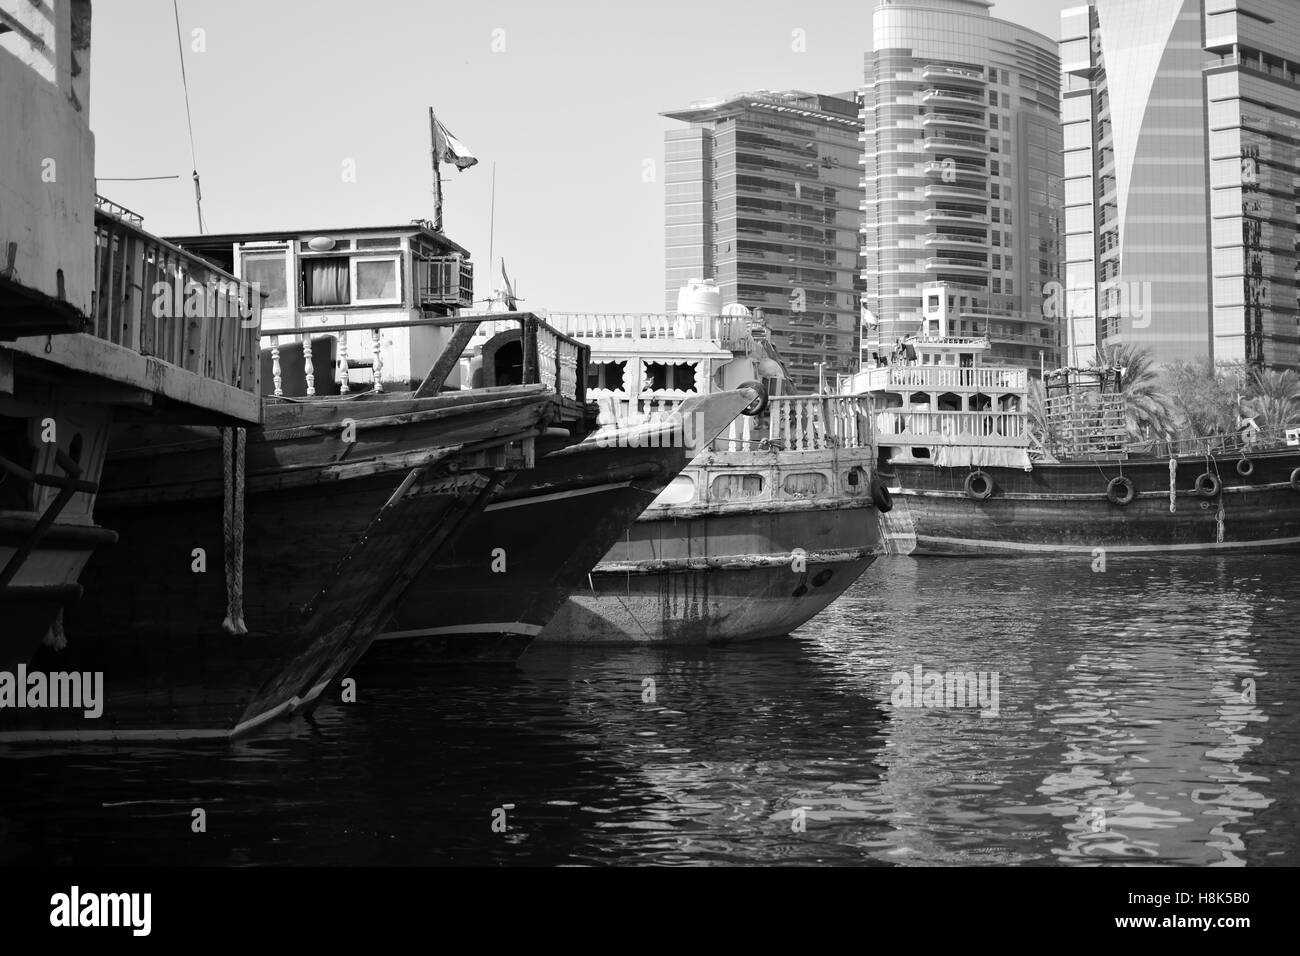 Boats in Dubai habour - Stock Image